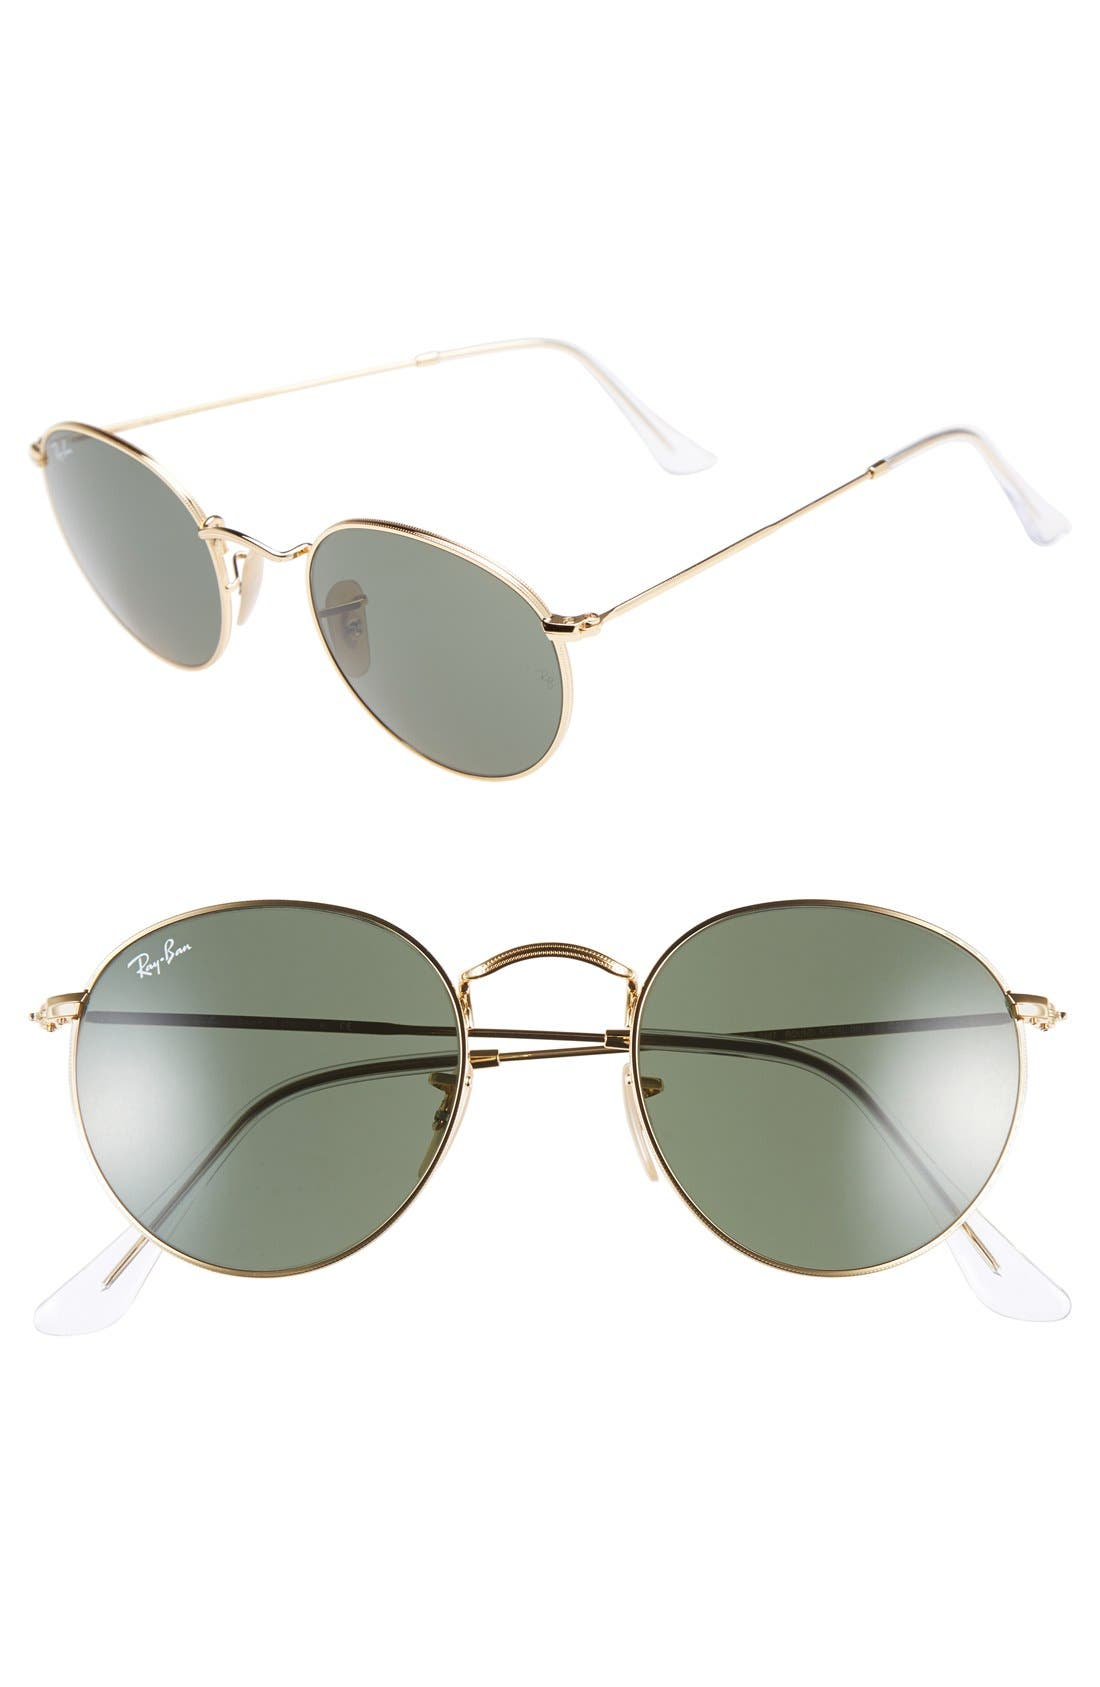 Main Image - Ray-Ban Icons 50mm Round Metal Sunglasses